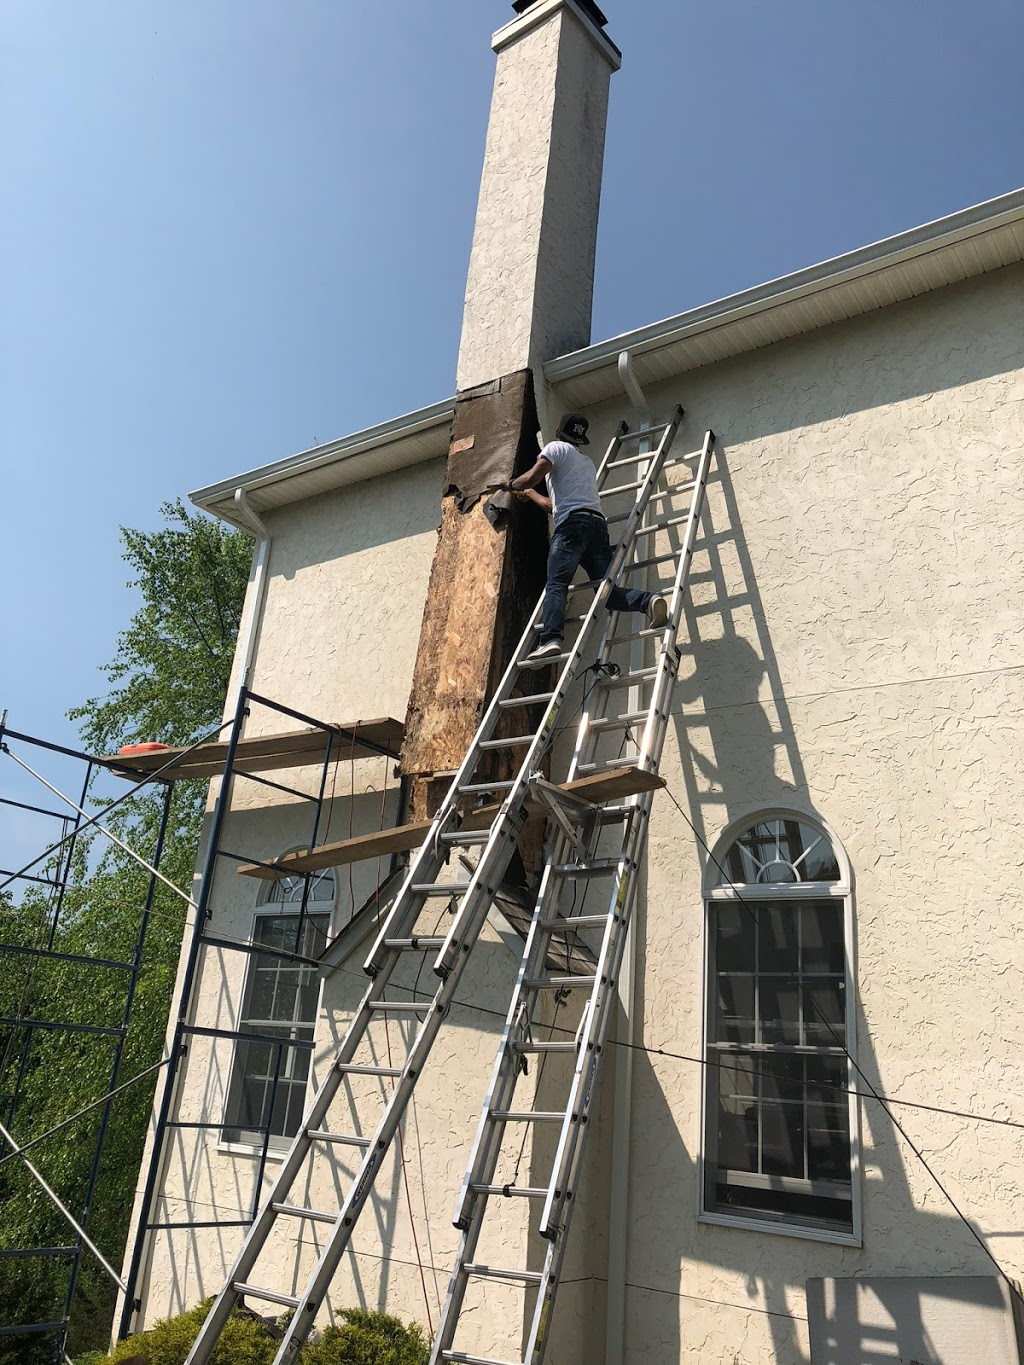 American Sons Professionals Roofing & Chimney - roofing contractor  | Photo 9 of 10 | Address: 425 Riverside Dr, Wayne, NJ 07470, USA | Phone: (201) 396-5509